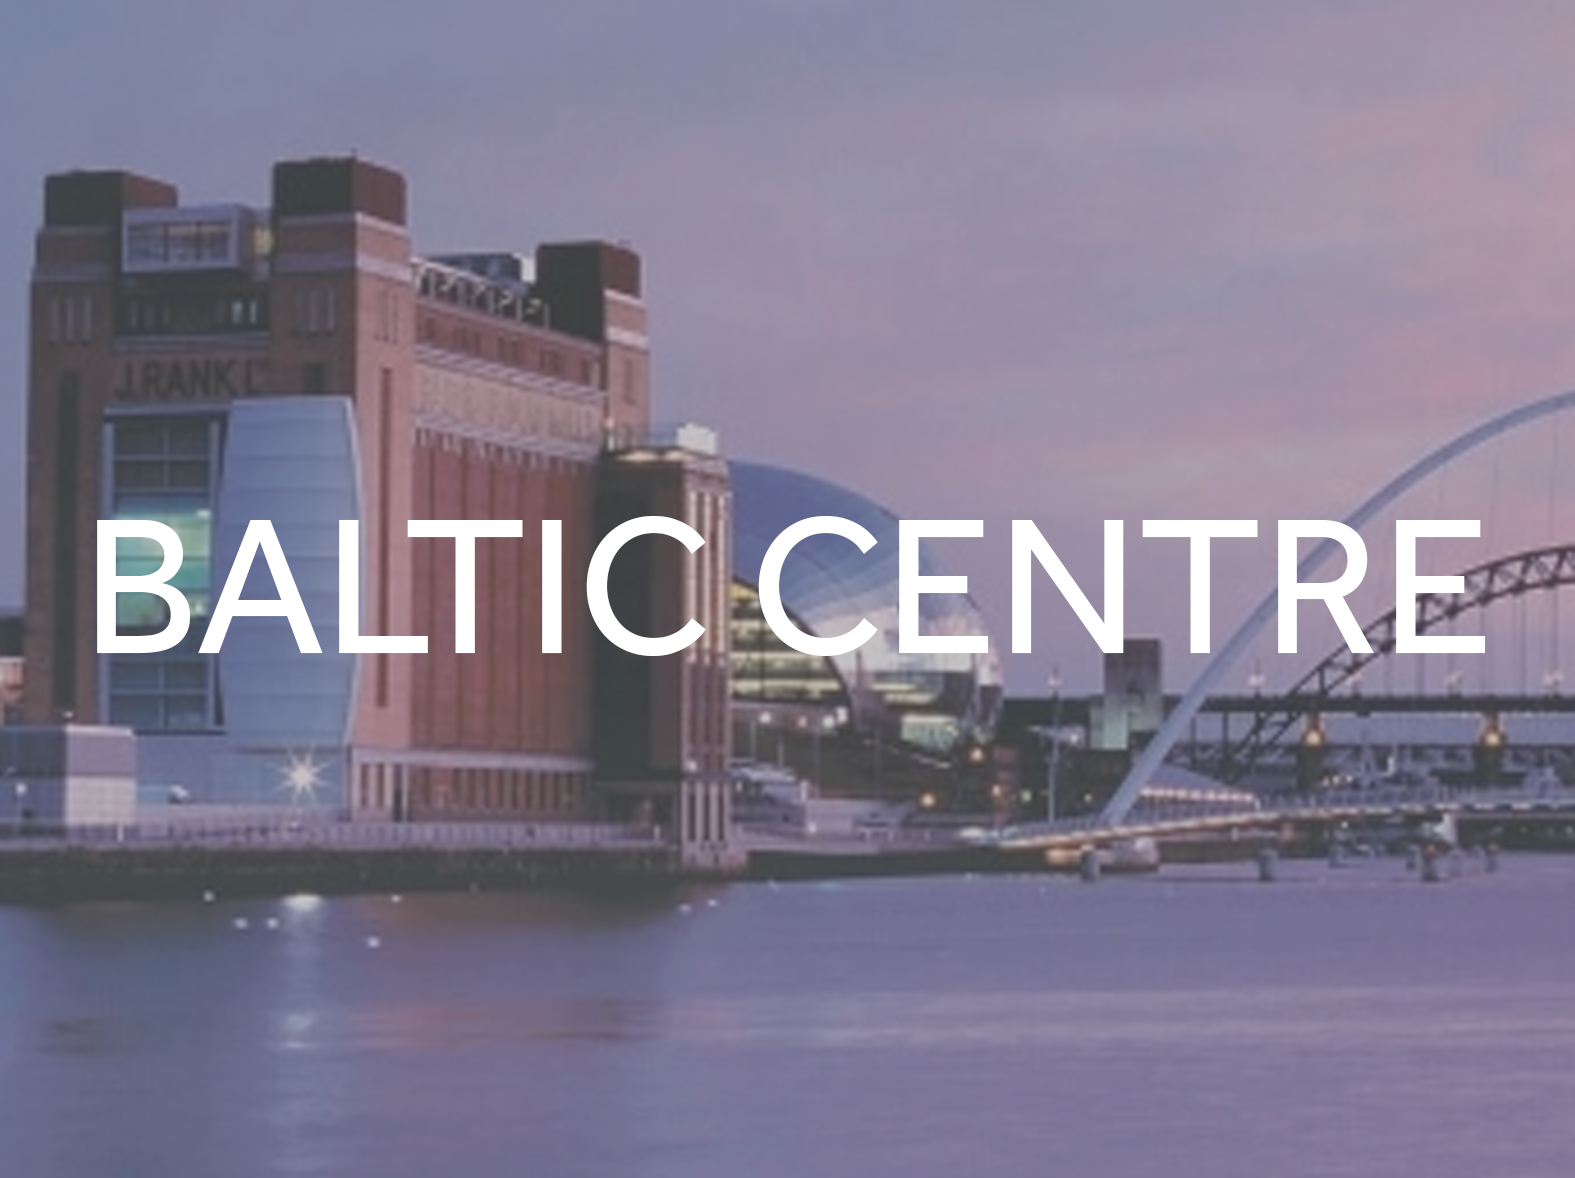 BALTIC CENTRE.png